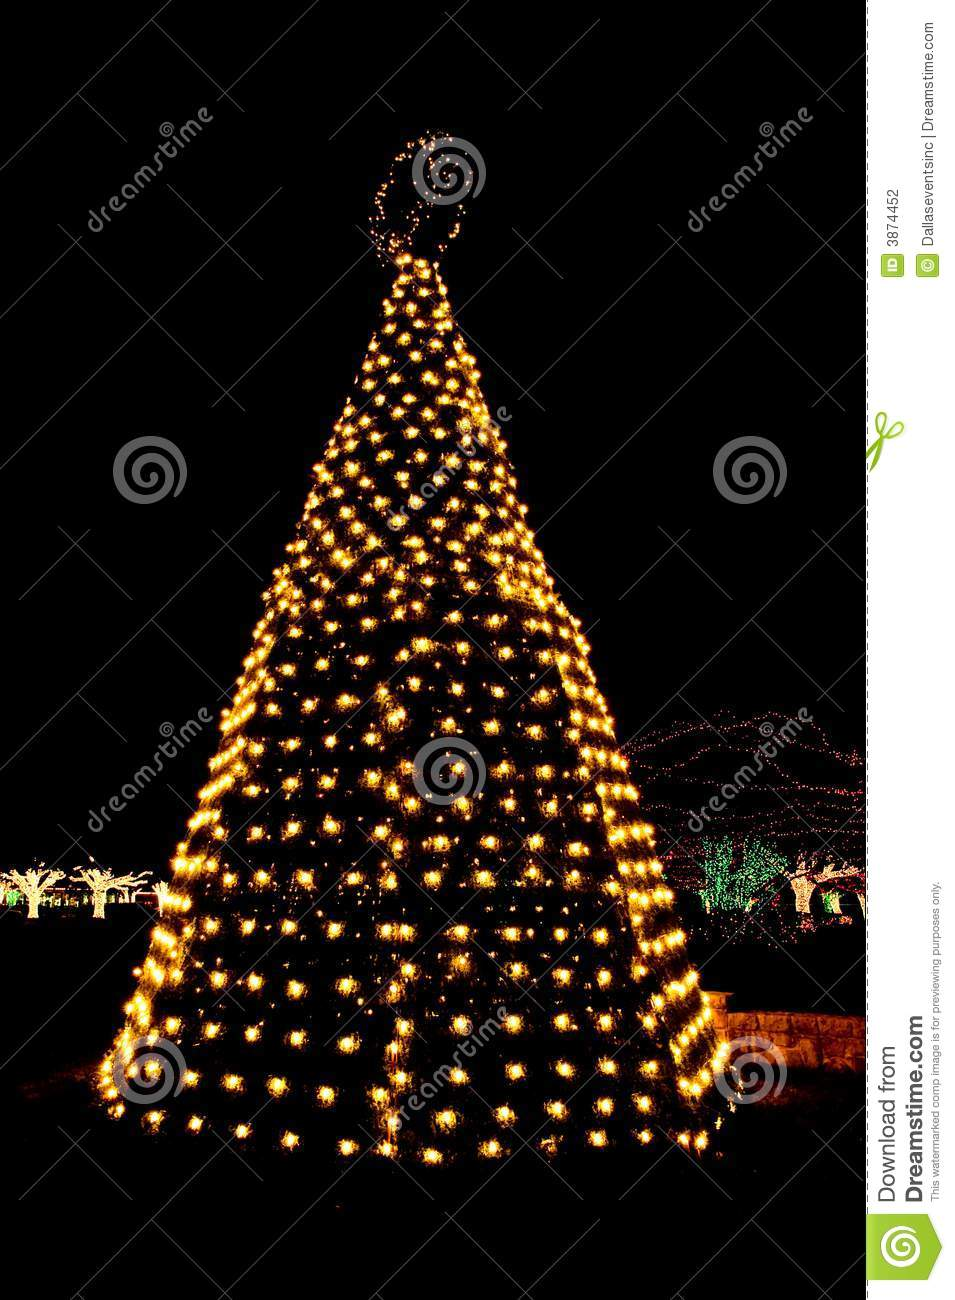 royalty free stock photo download outdoor christmas tree - Outdoor Christmas Trees